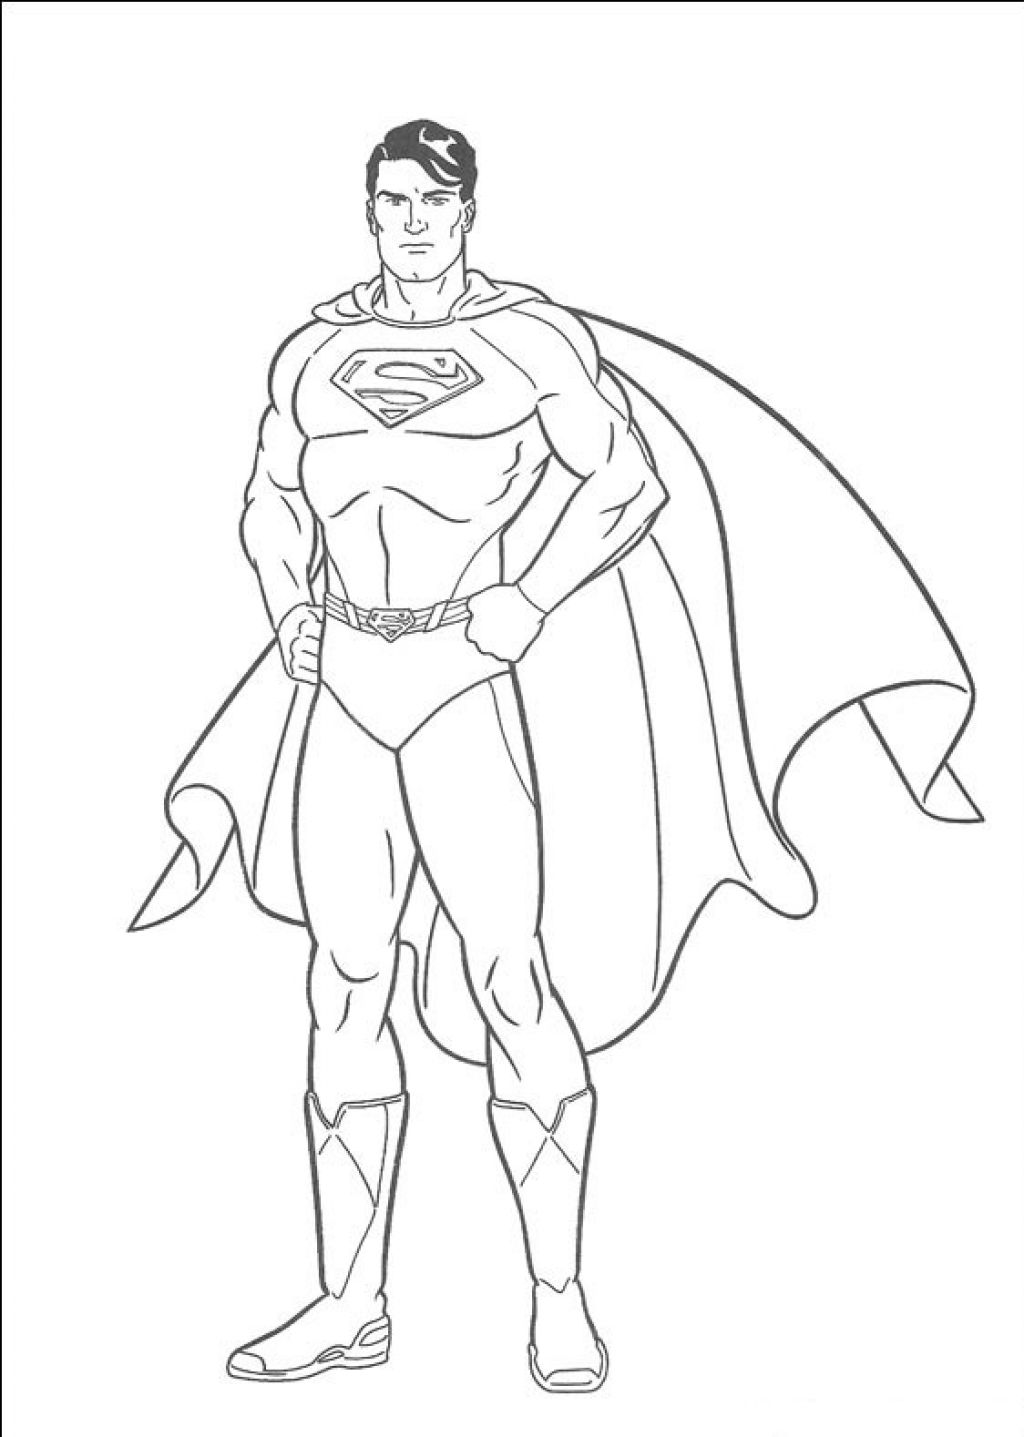 Coloring Pages Super Man Coloring Page 14 kids coloring pages superman print color craft supermanprintablecoloring pages